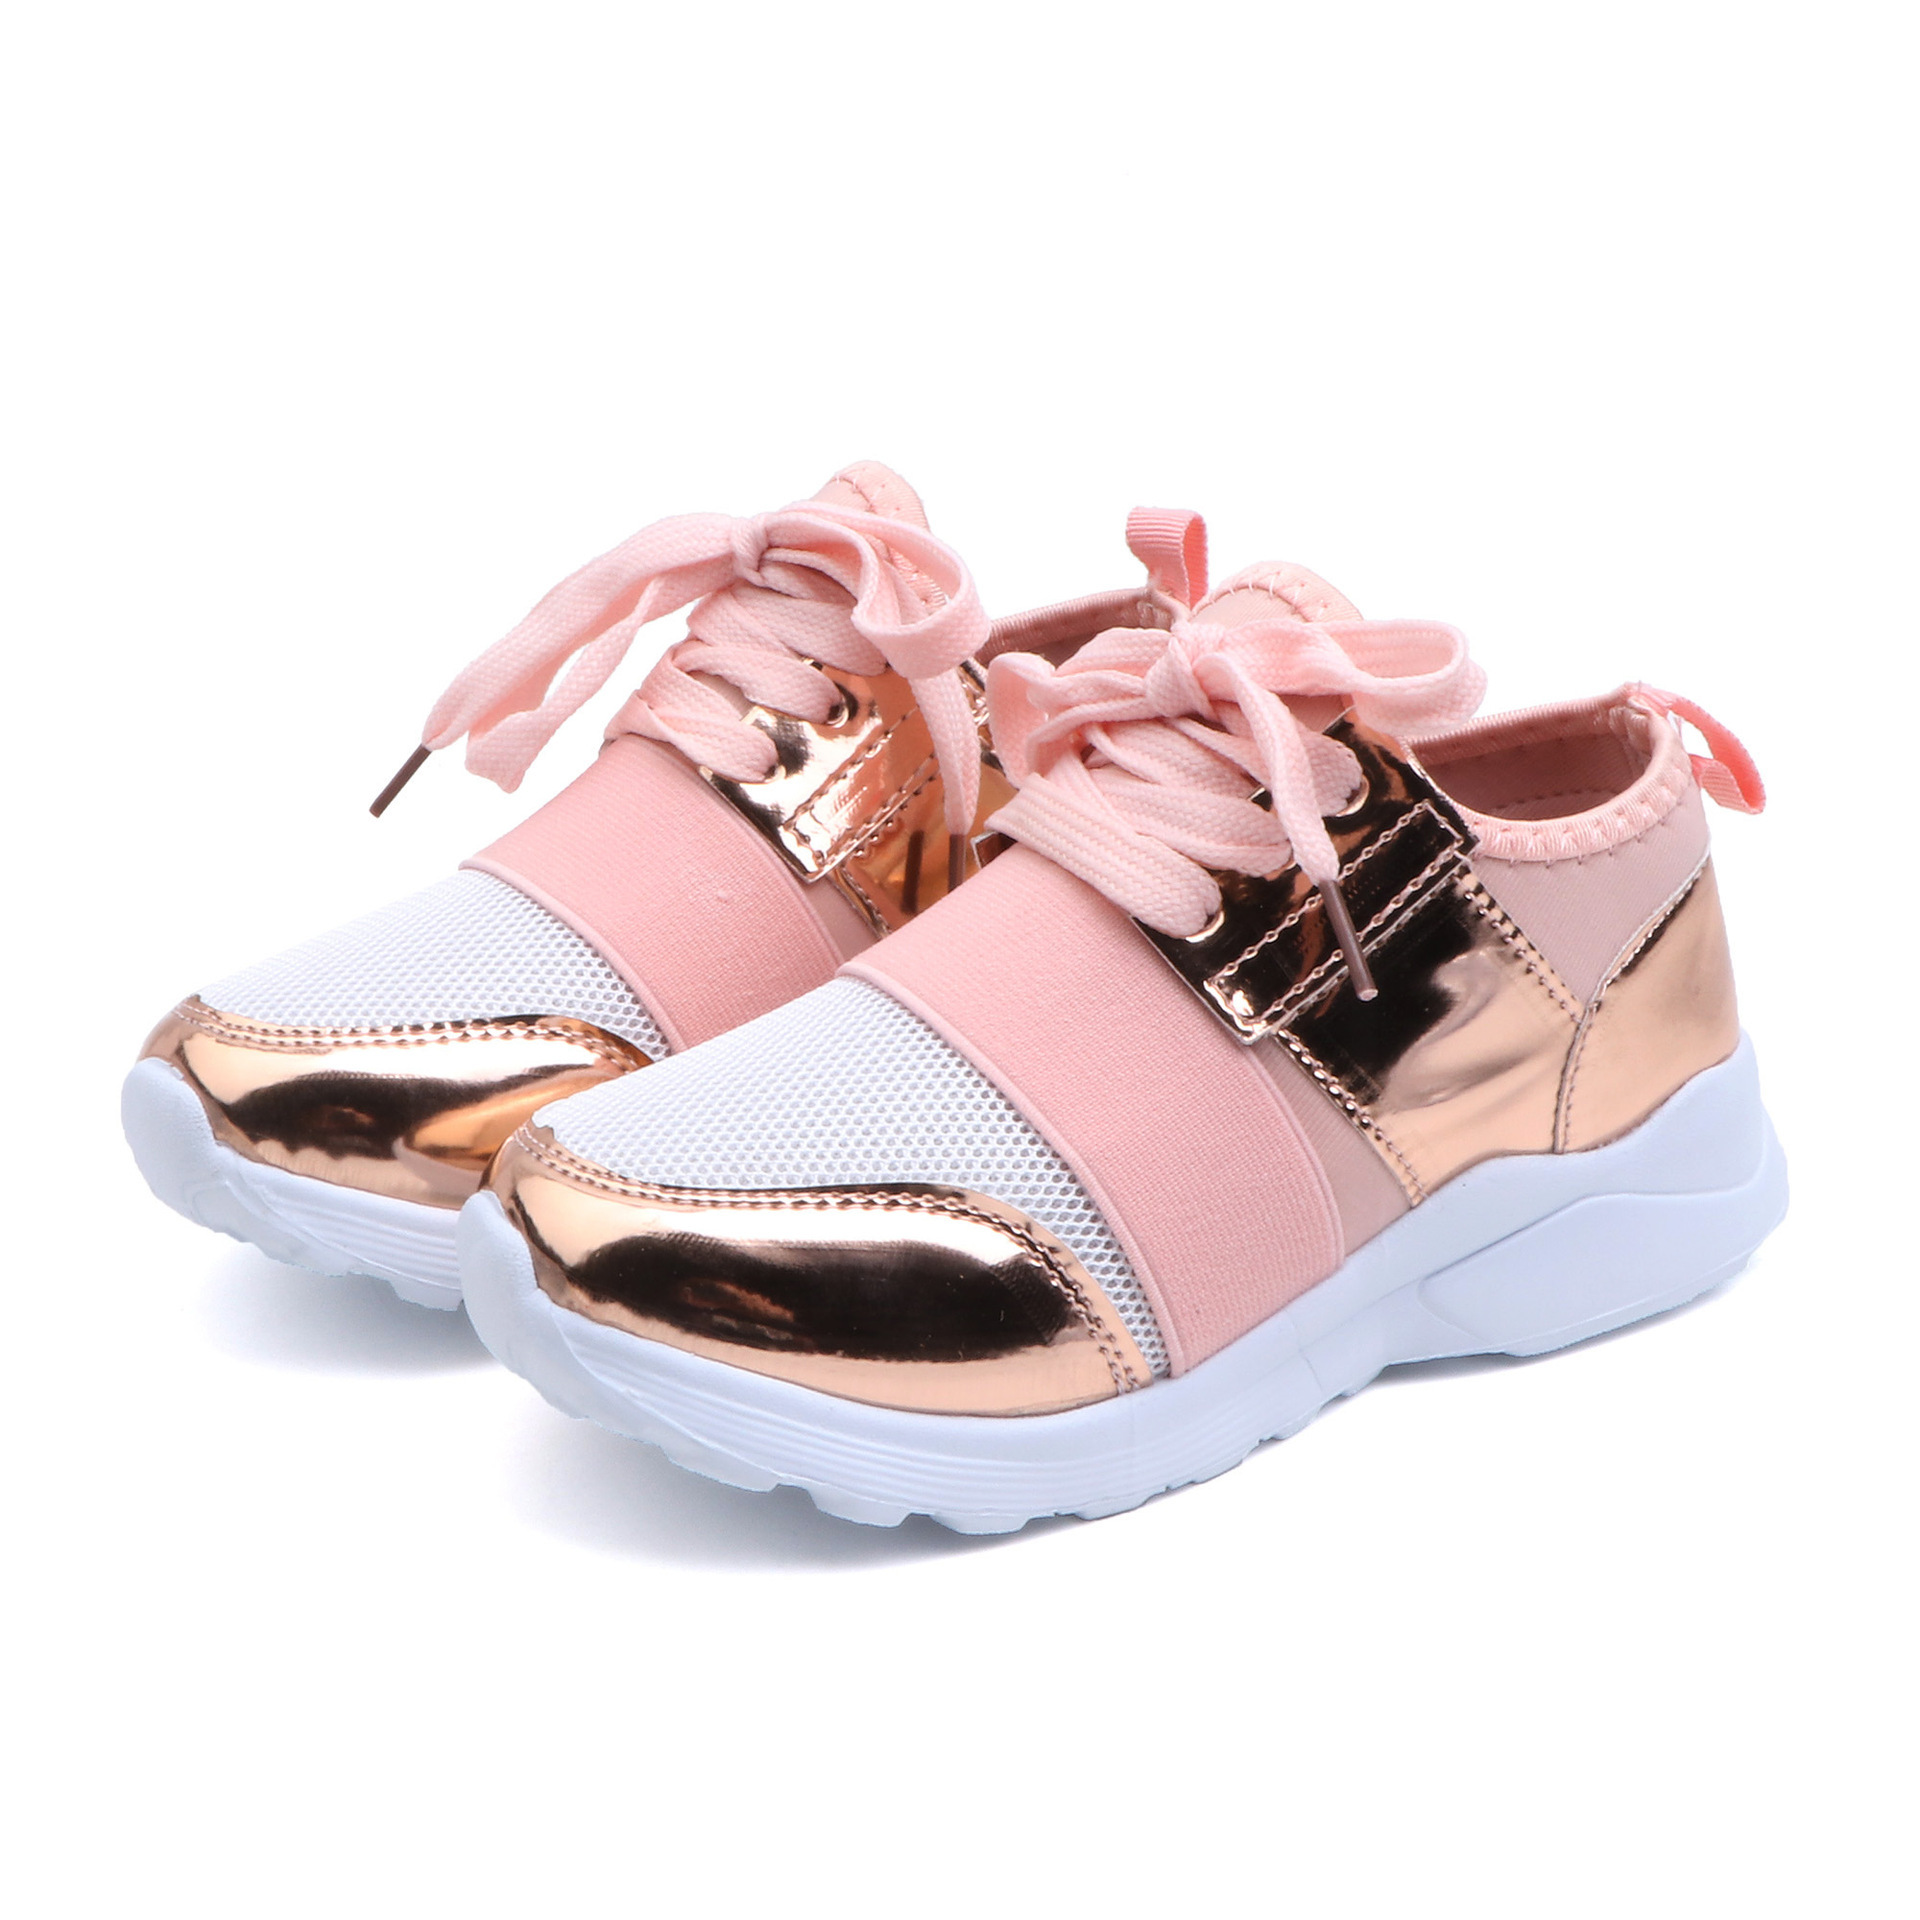 Girls Mesh PU Breathable Sneakers Toddler Little Kid Casual Fashion Trainers Children Sports Shoes <font><b>4</b></font> 5 <font><b>6</b></font> 7 8 9 10 11 <font><b>12</b></font> Year Old image